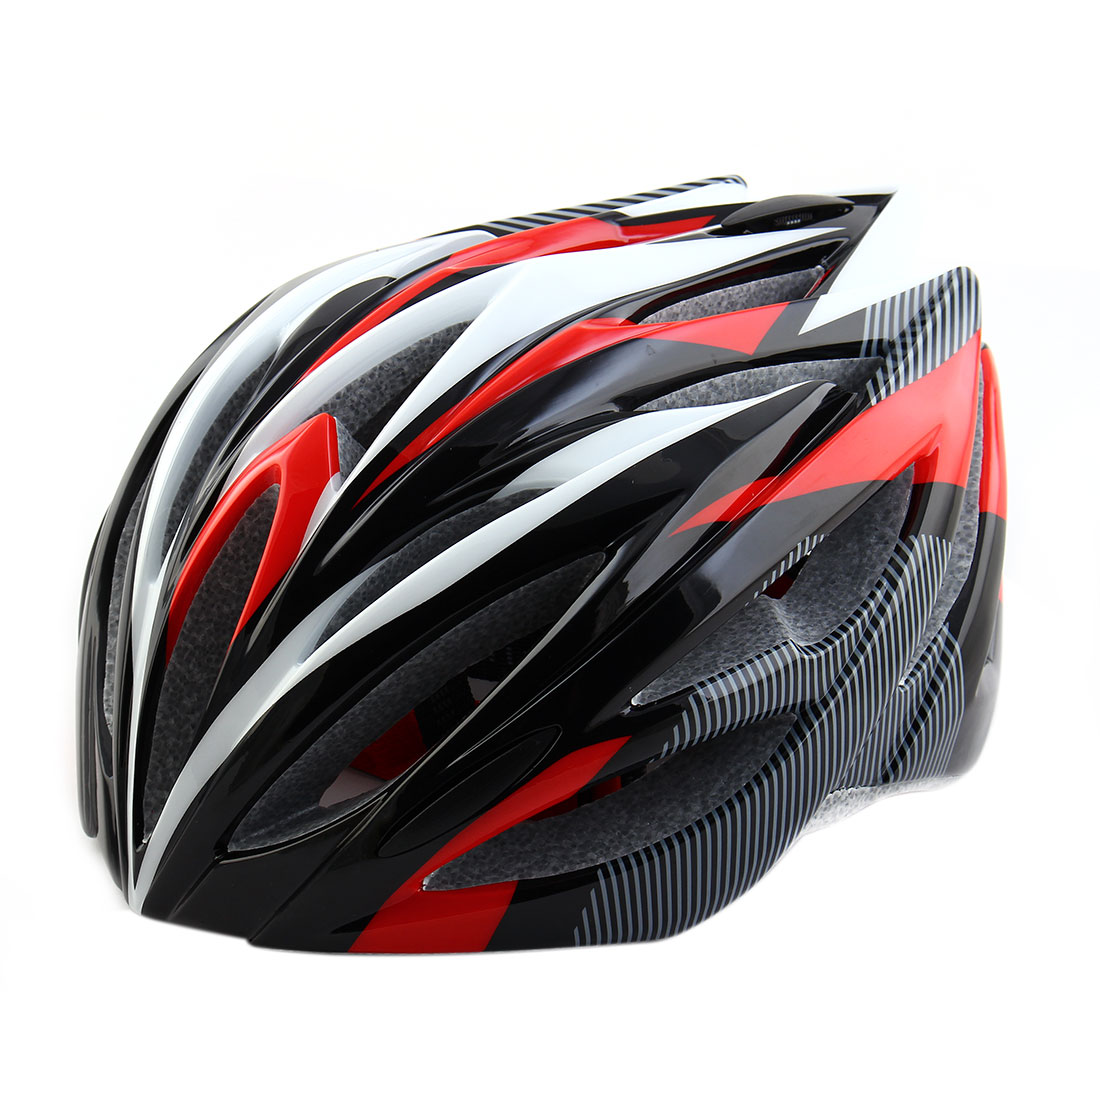 Patent Authorized PC Shell 21 Holes Cycling Cap Head Safety Protector Bicycle Hat Adjustable Cycling Bike Helmet Red